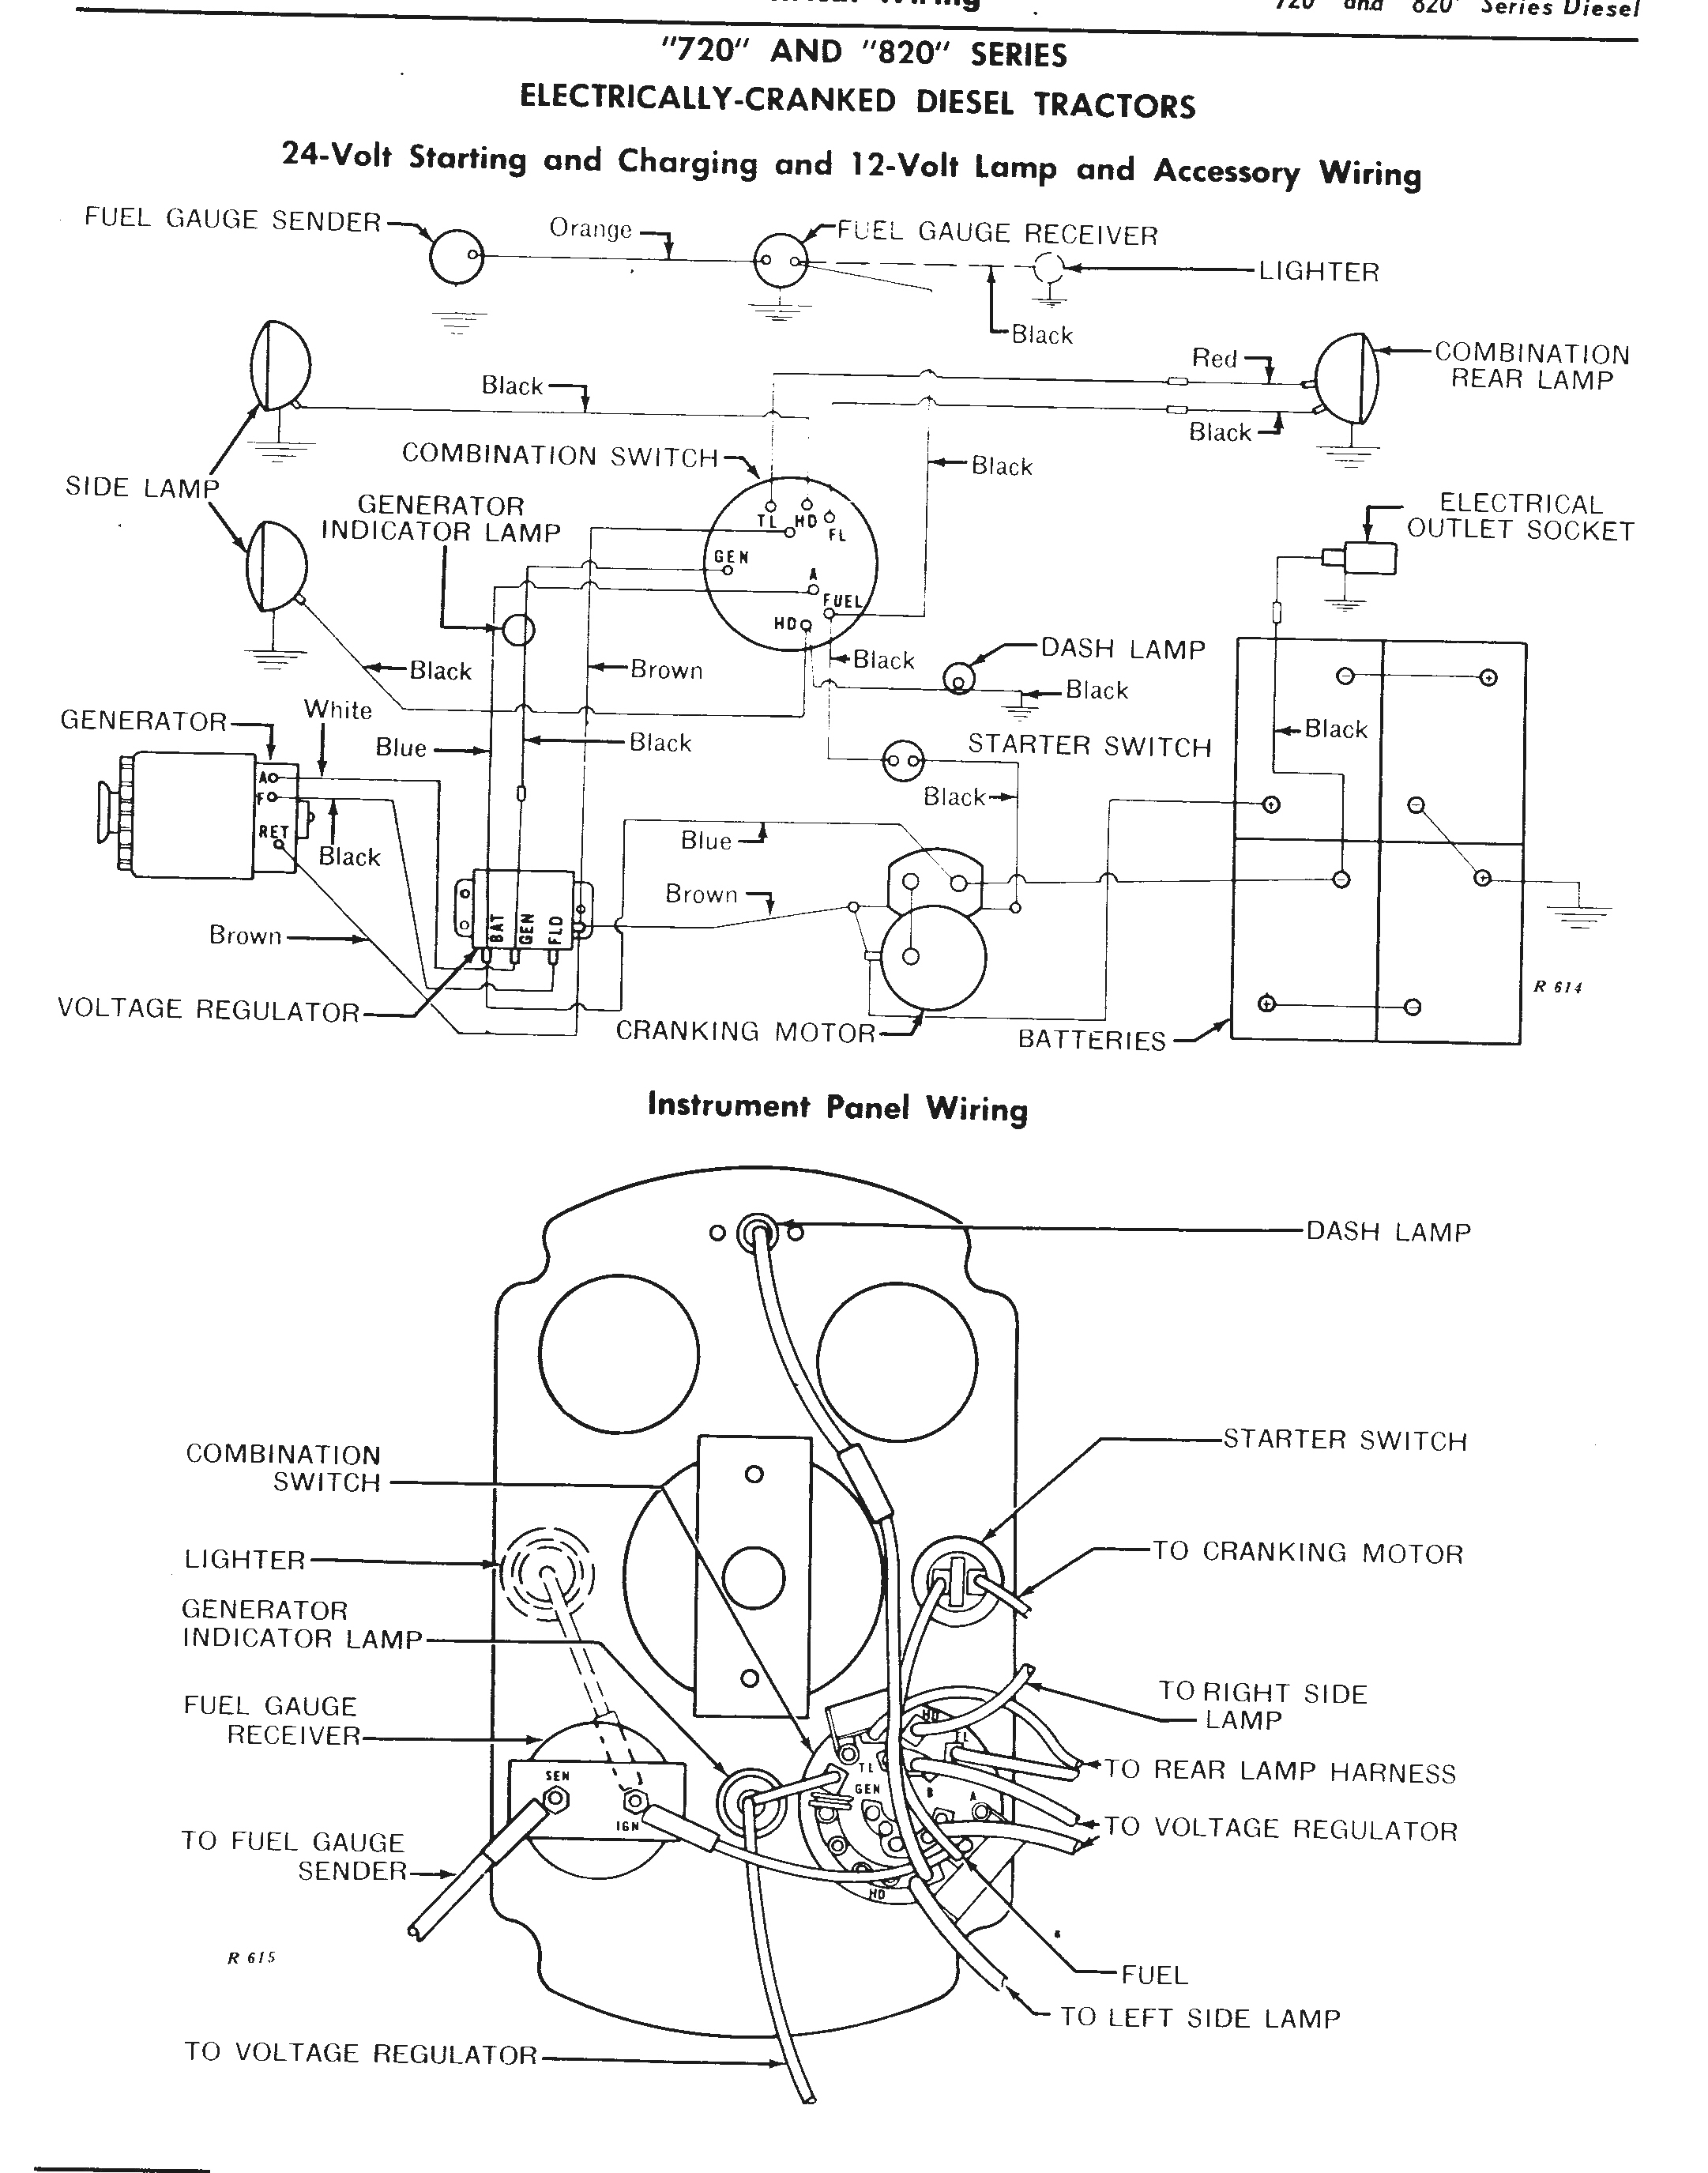 The John Deere 24 Volt Electrical System Explained – John Deere Wiring Harness Diagram